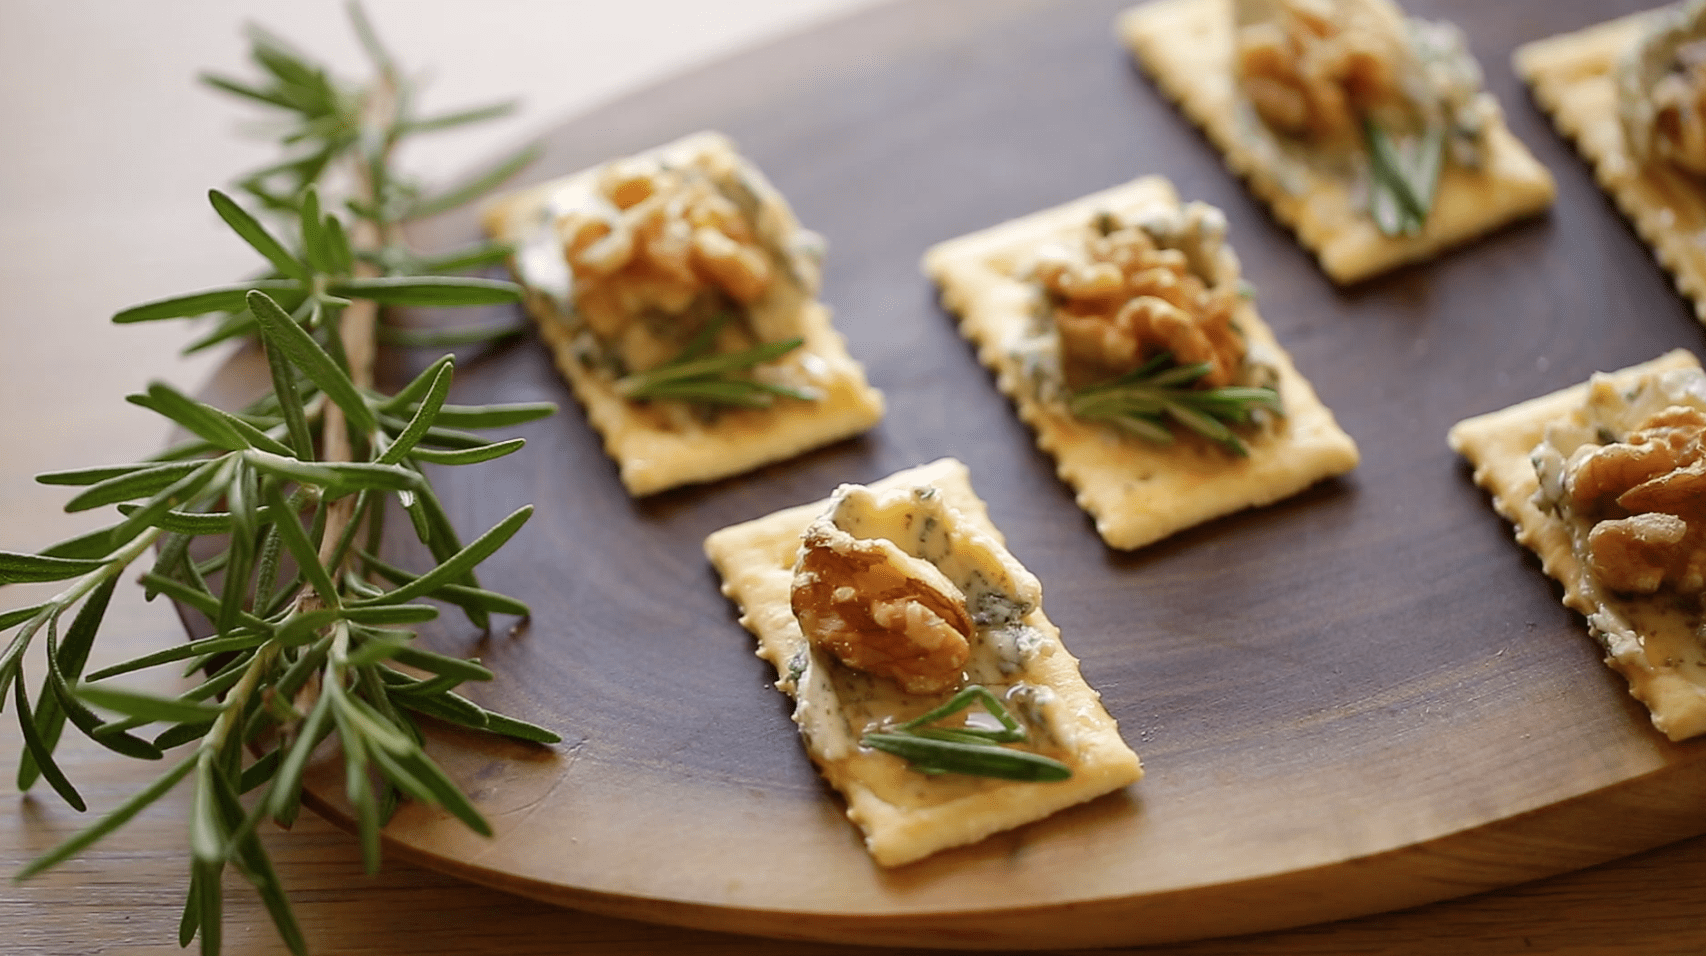 Canape 2016 Sweet And Savory Appetizers With Keebler Crackers Sponsored Post